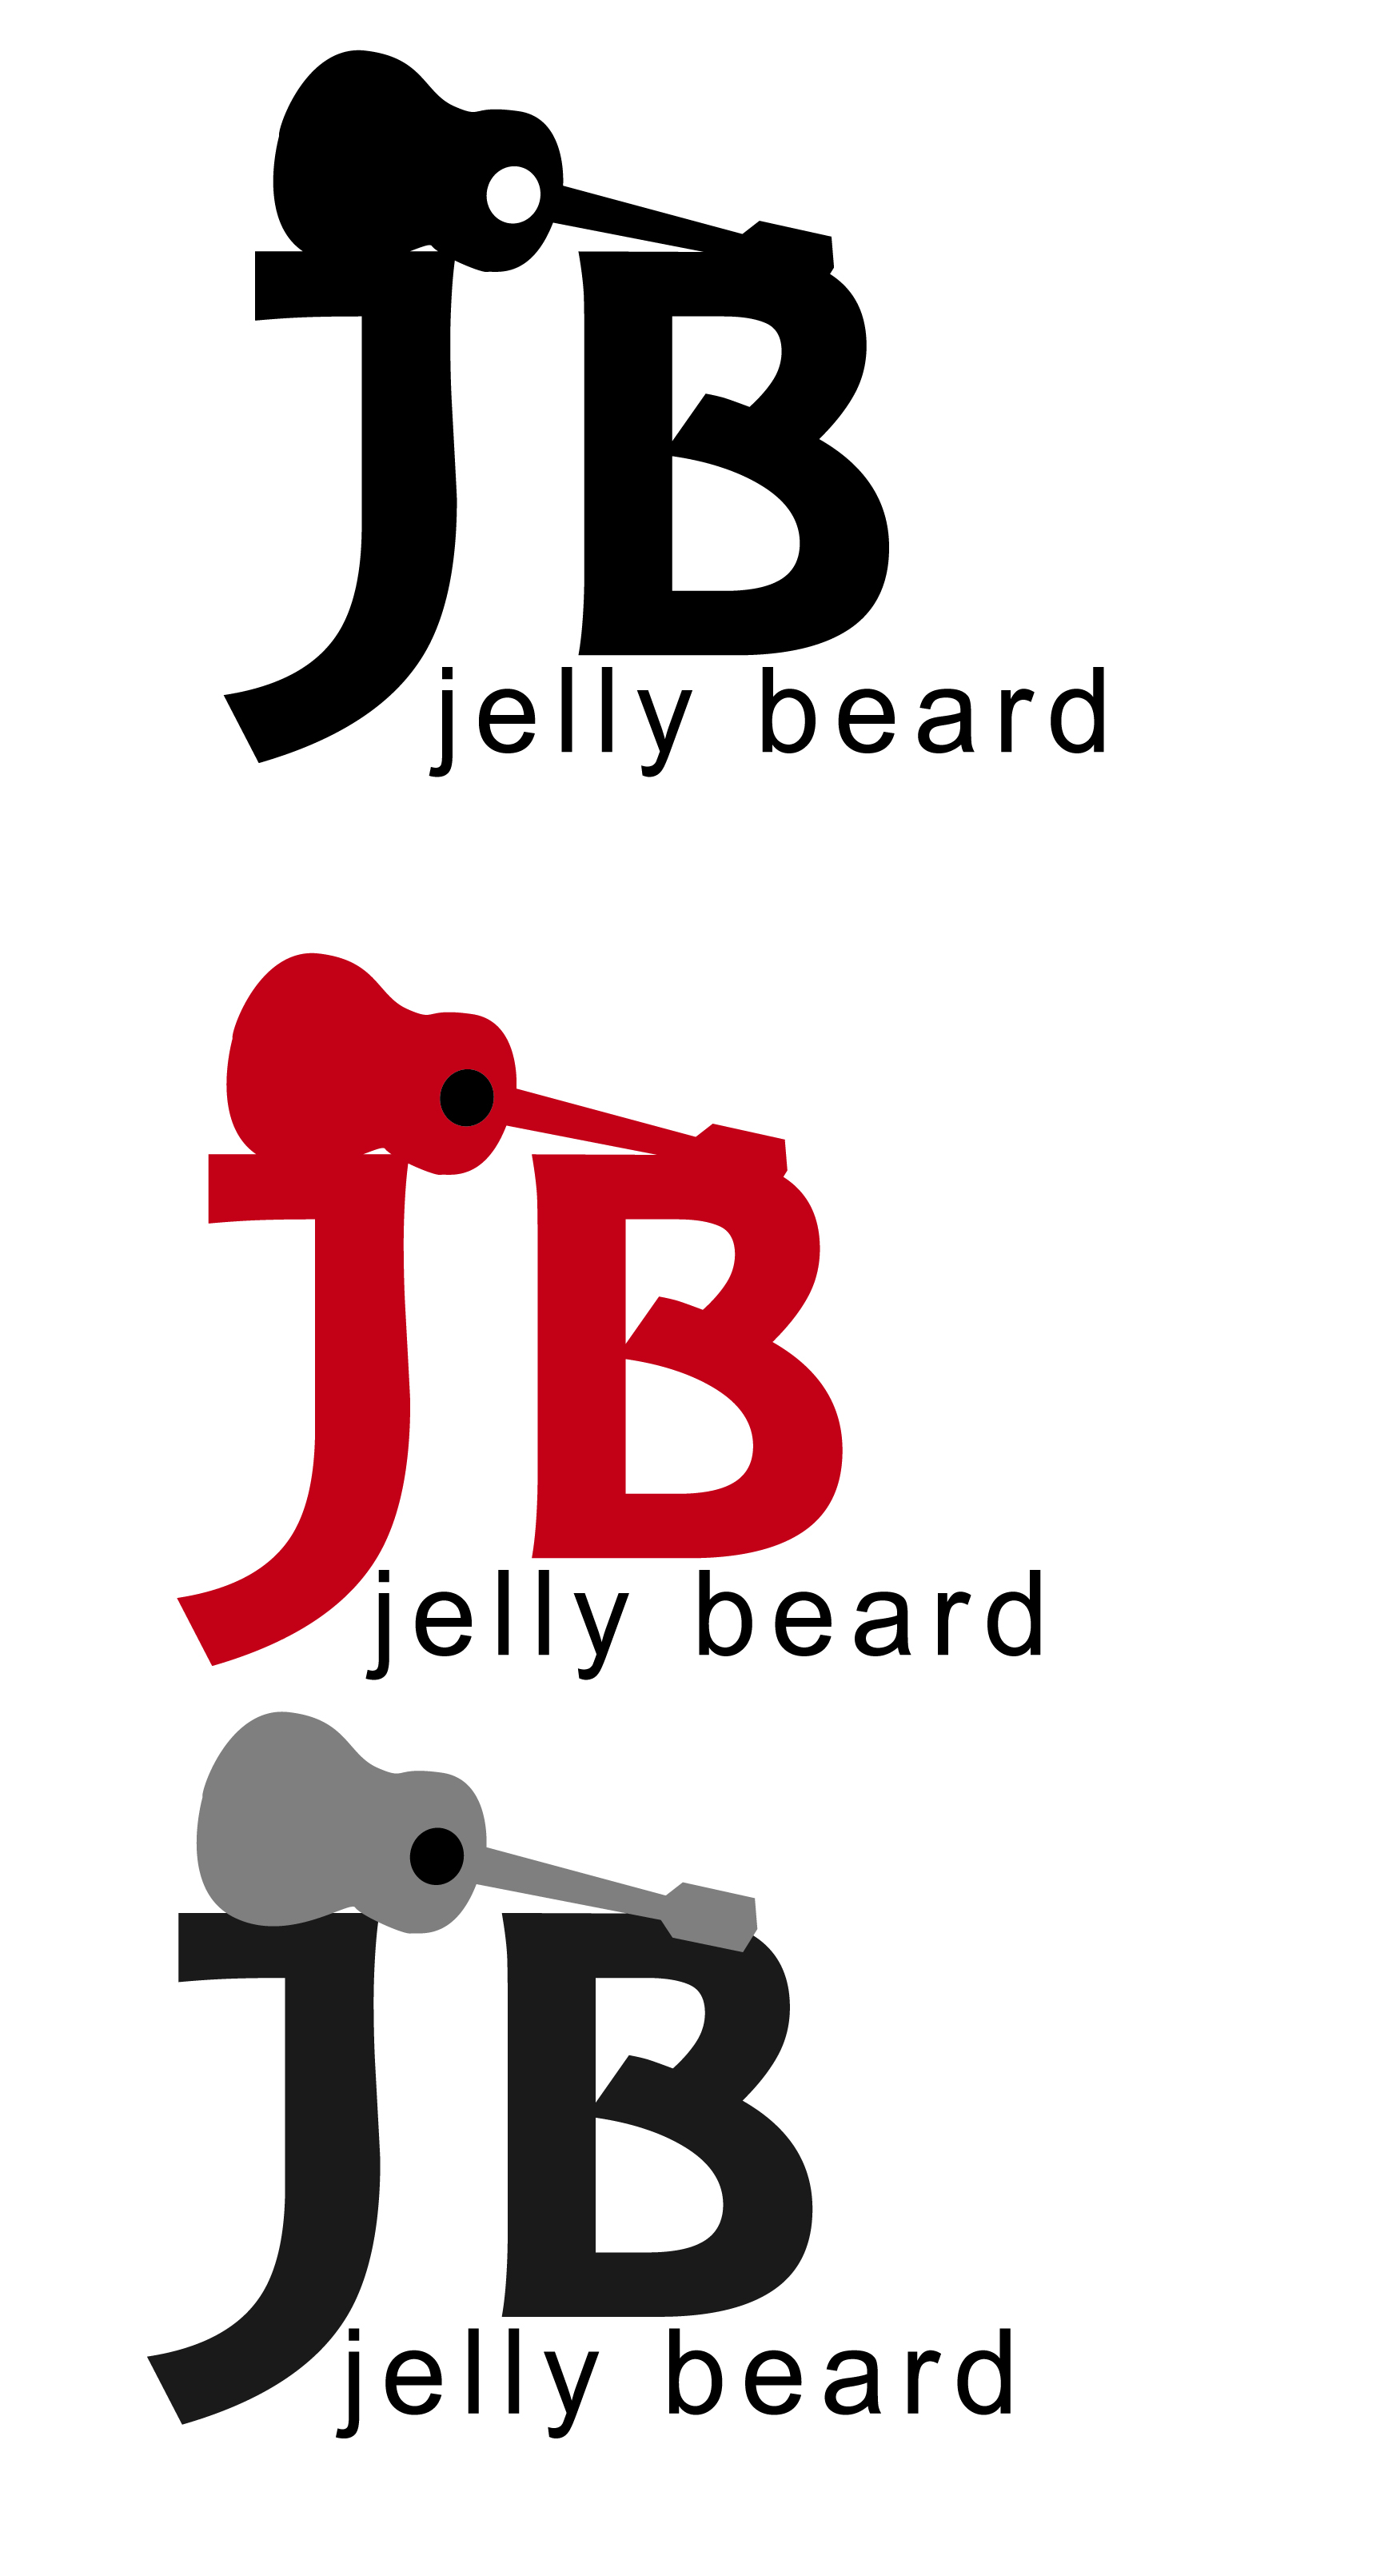 Logo Design by V Anil Yadavv - Entry No. 59 in the Logo Design Contest jellybeard Logo Design.